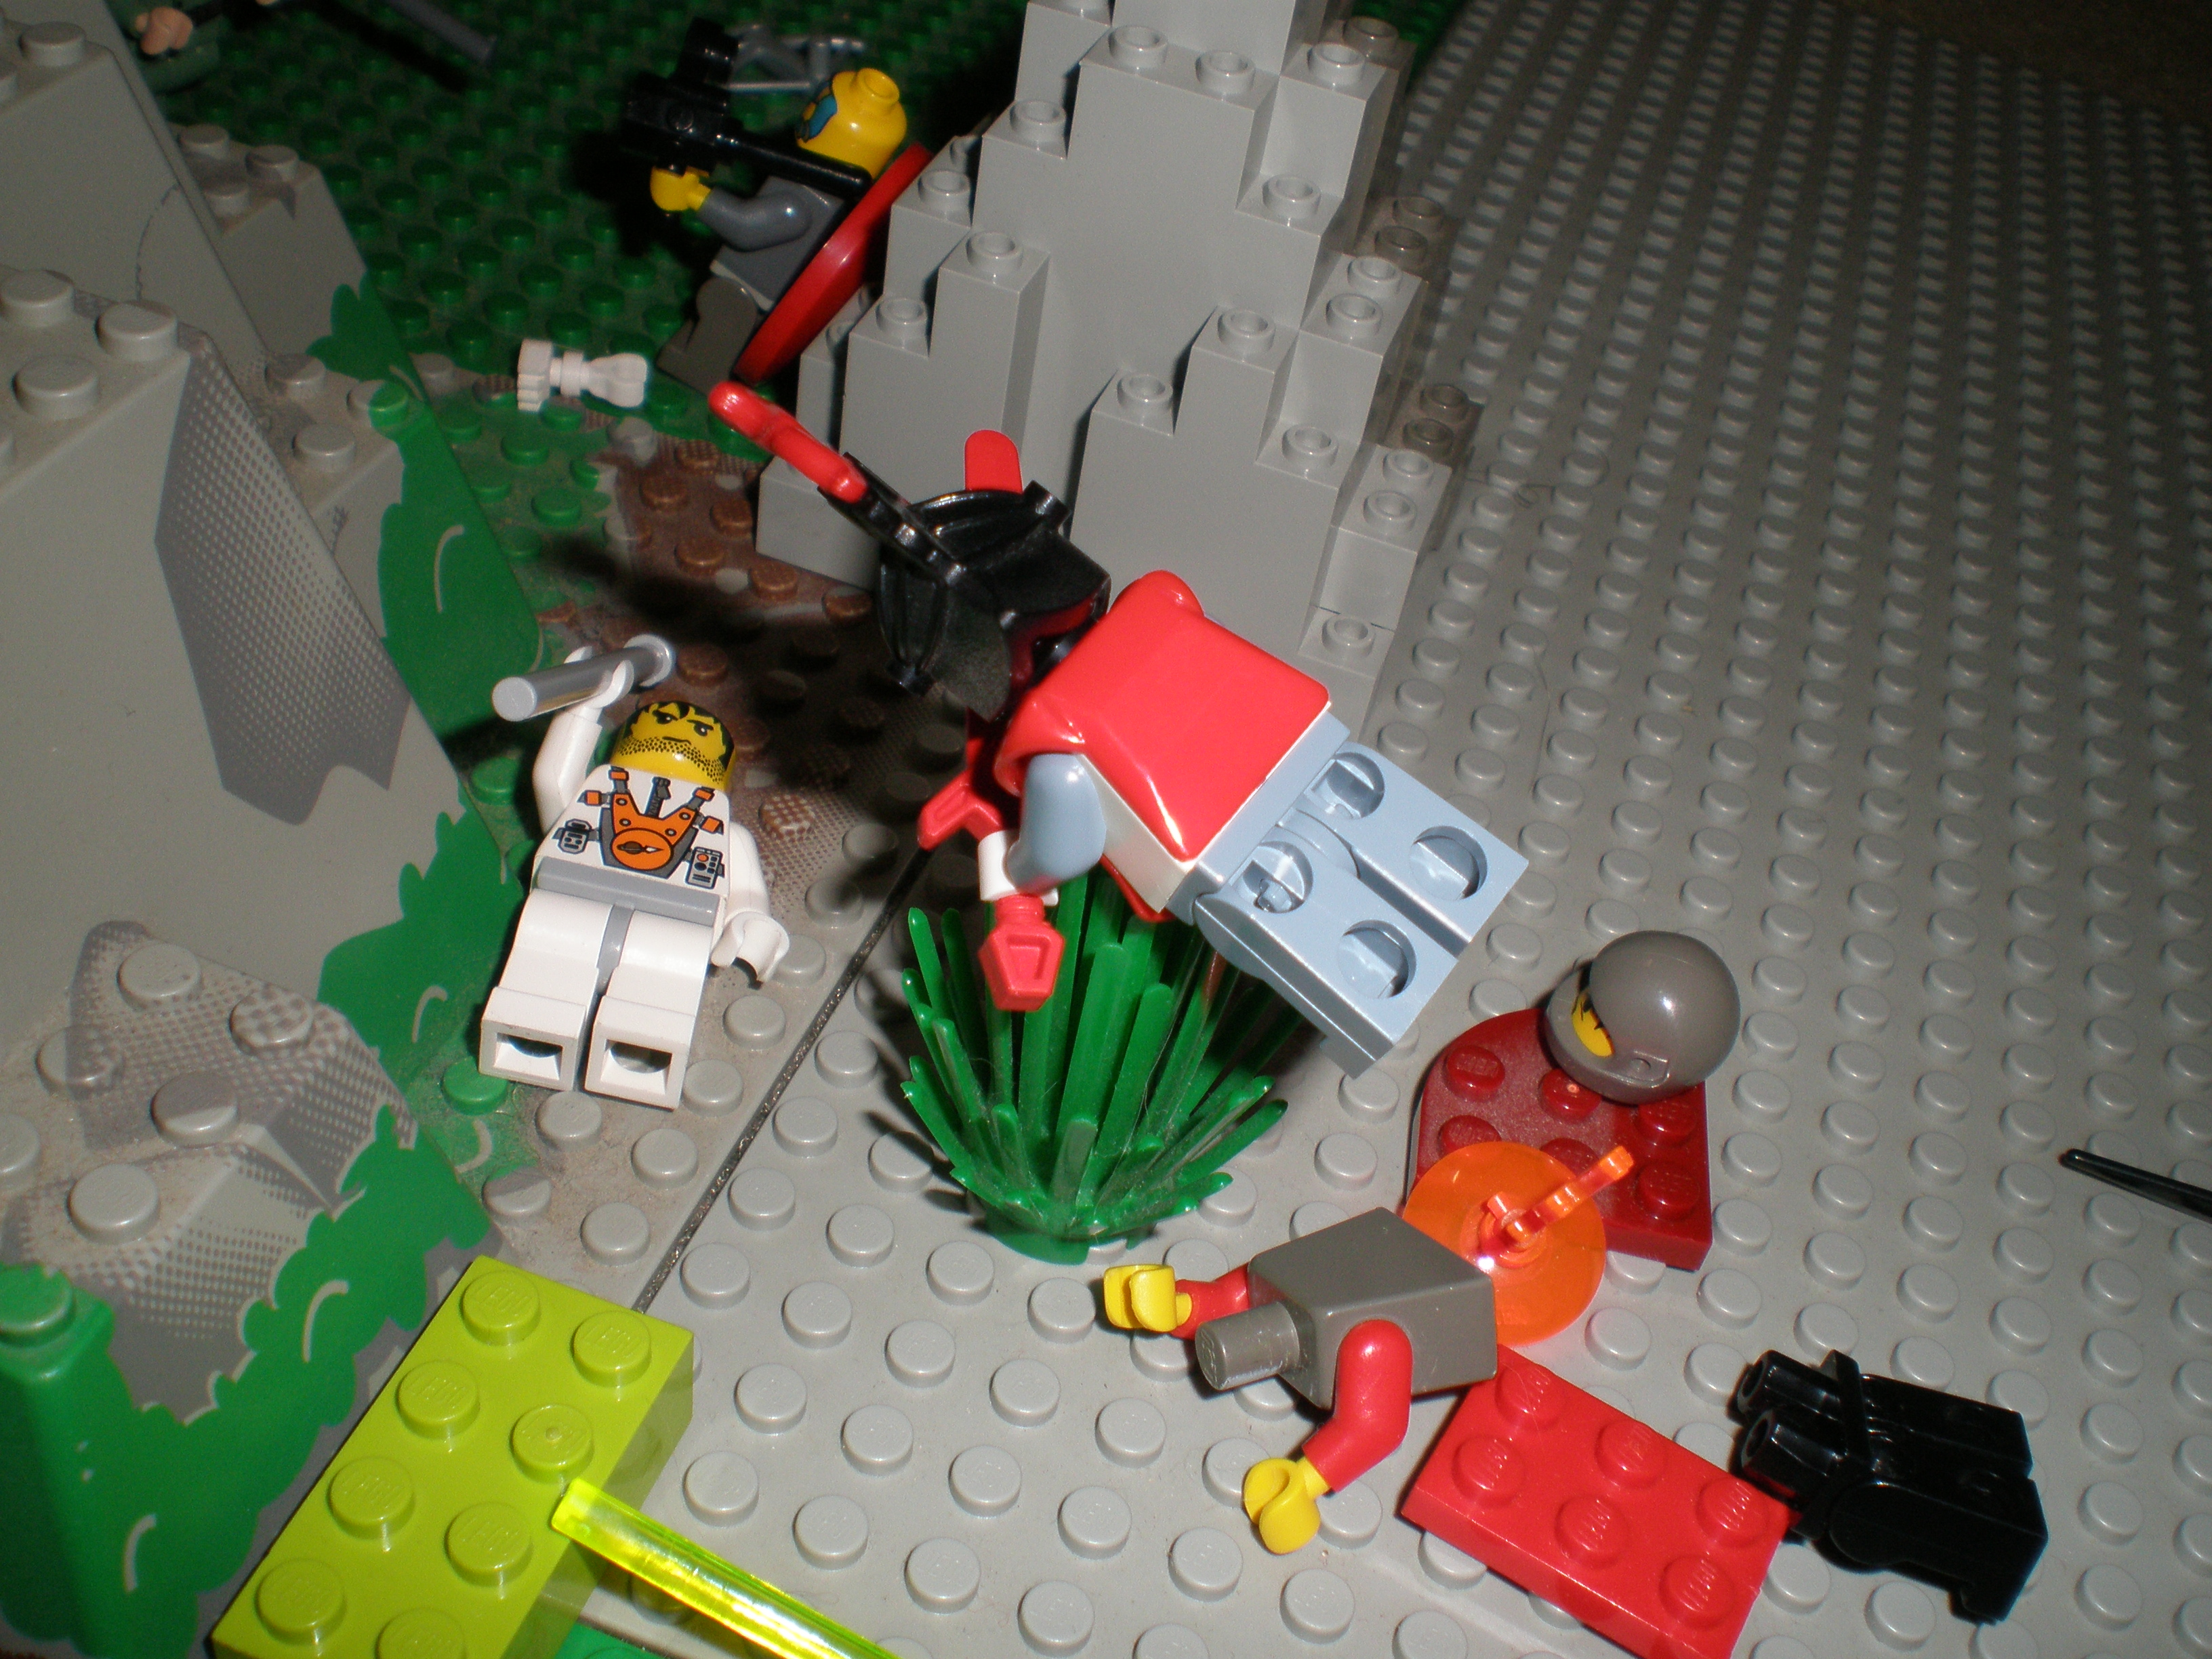 armagendon_lego_battle_014.jpg